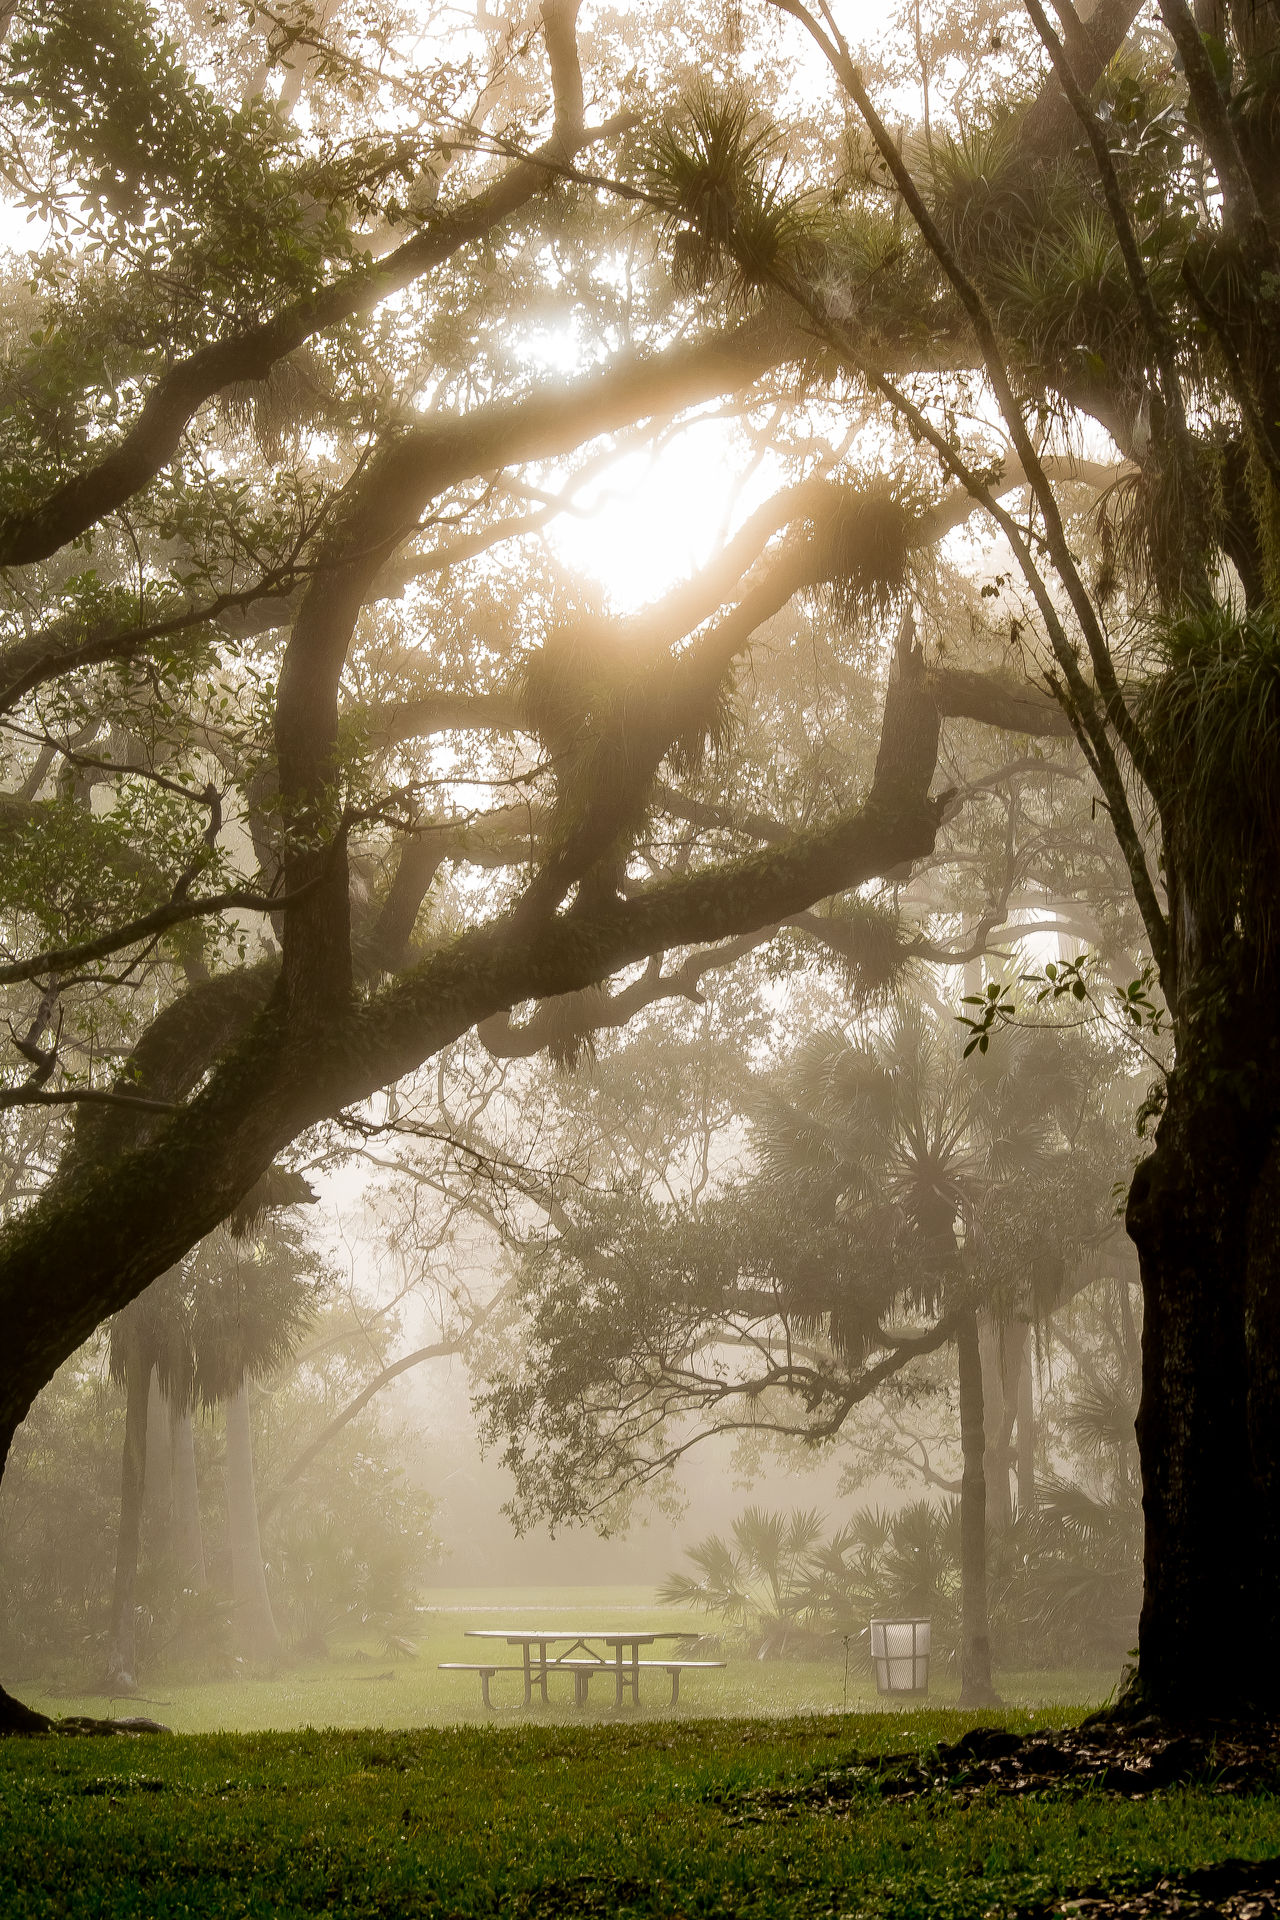 Beautiful Beauty In Nature Bench Day Fog Foggy Grass Landscape Landscape_Collection Landscape Photography Nature Nature Nature Photography Nature Collection No People Outdoors Park Sky Sunlight Sunrise Sunshine Tranquility Tree Tree Trunk Wonderful Let's Go. Together.